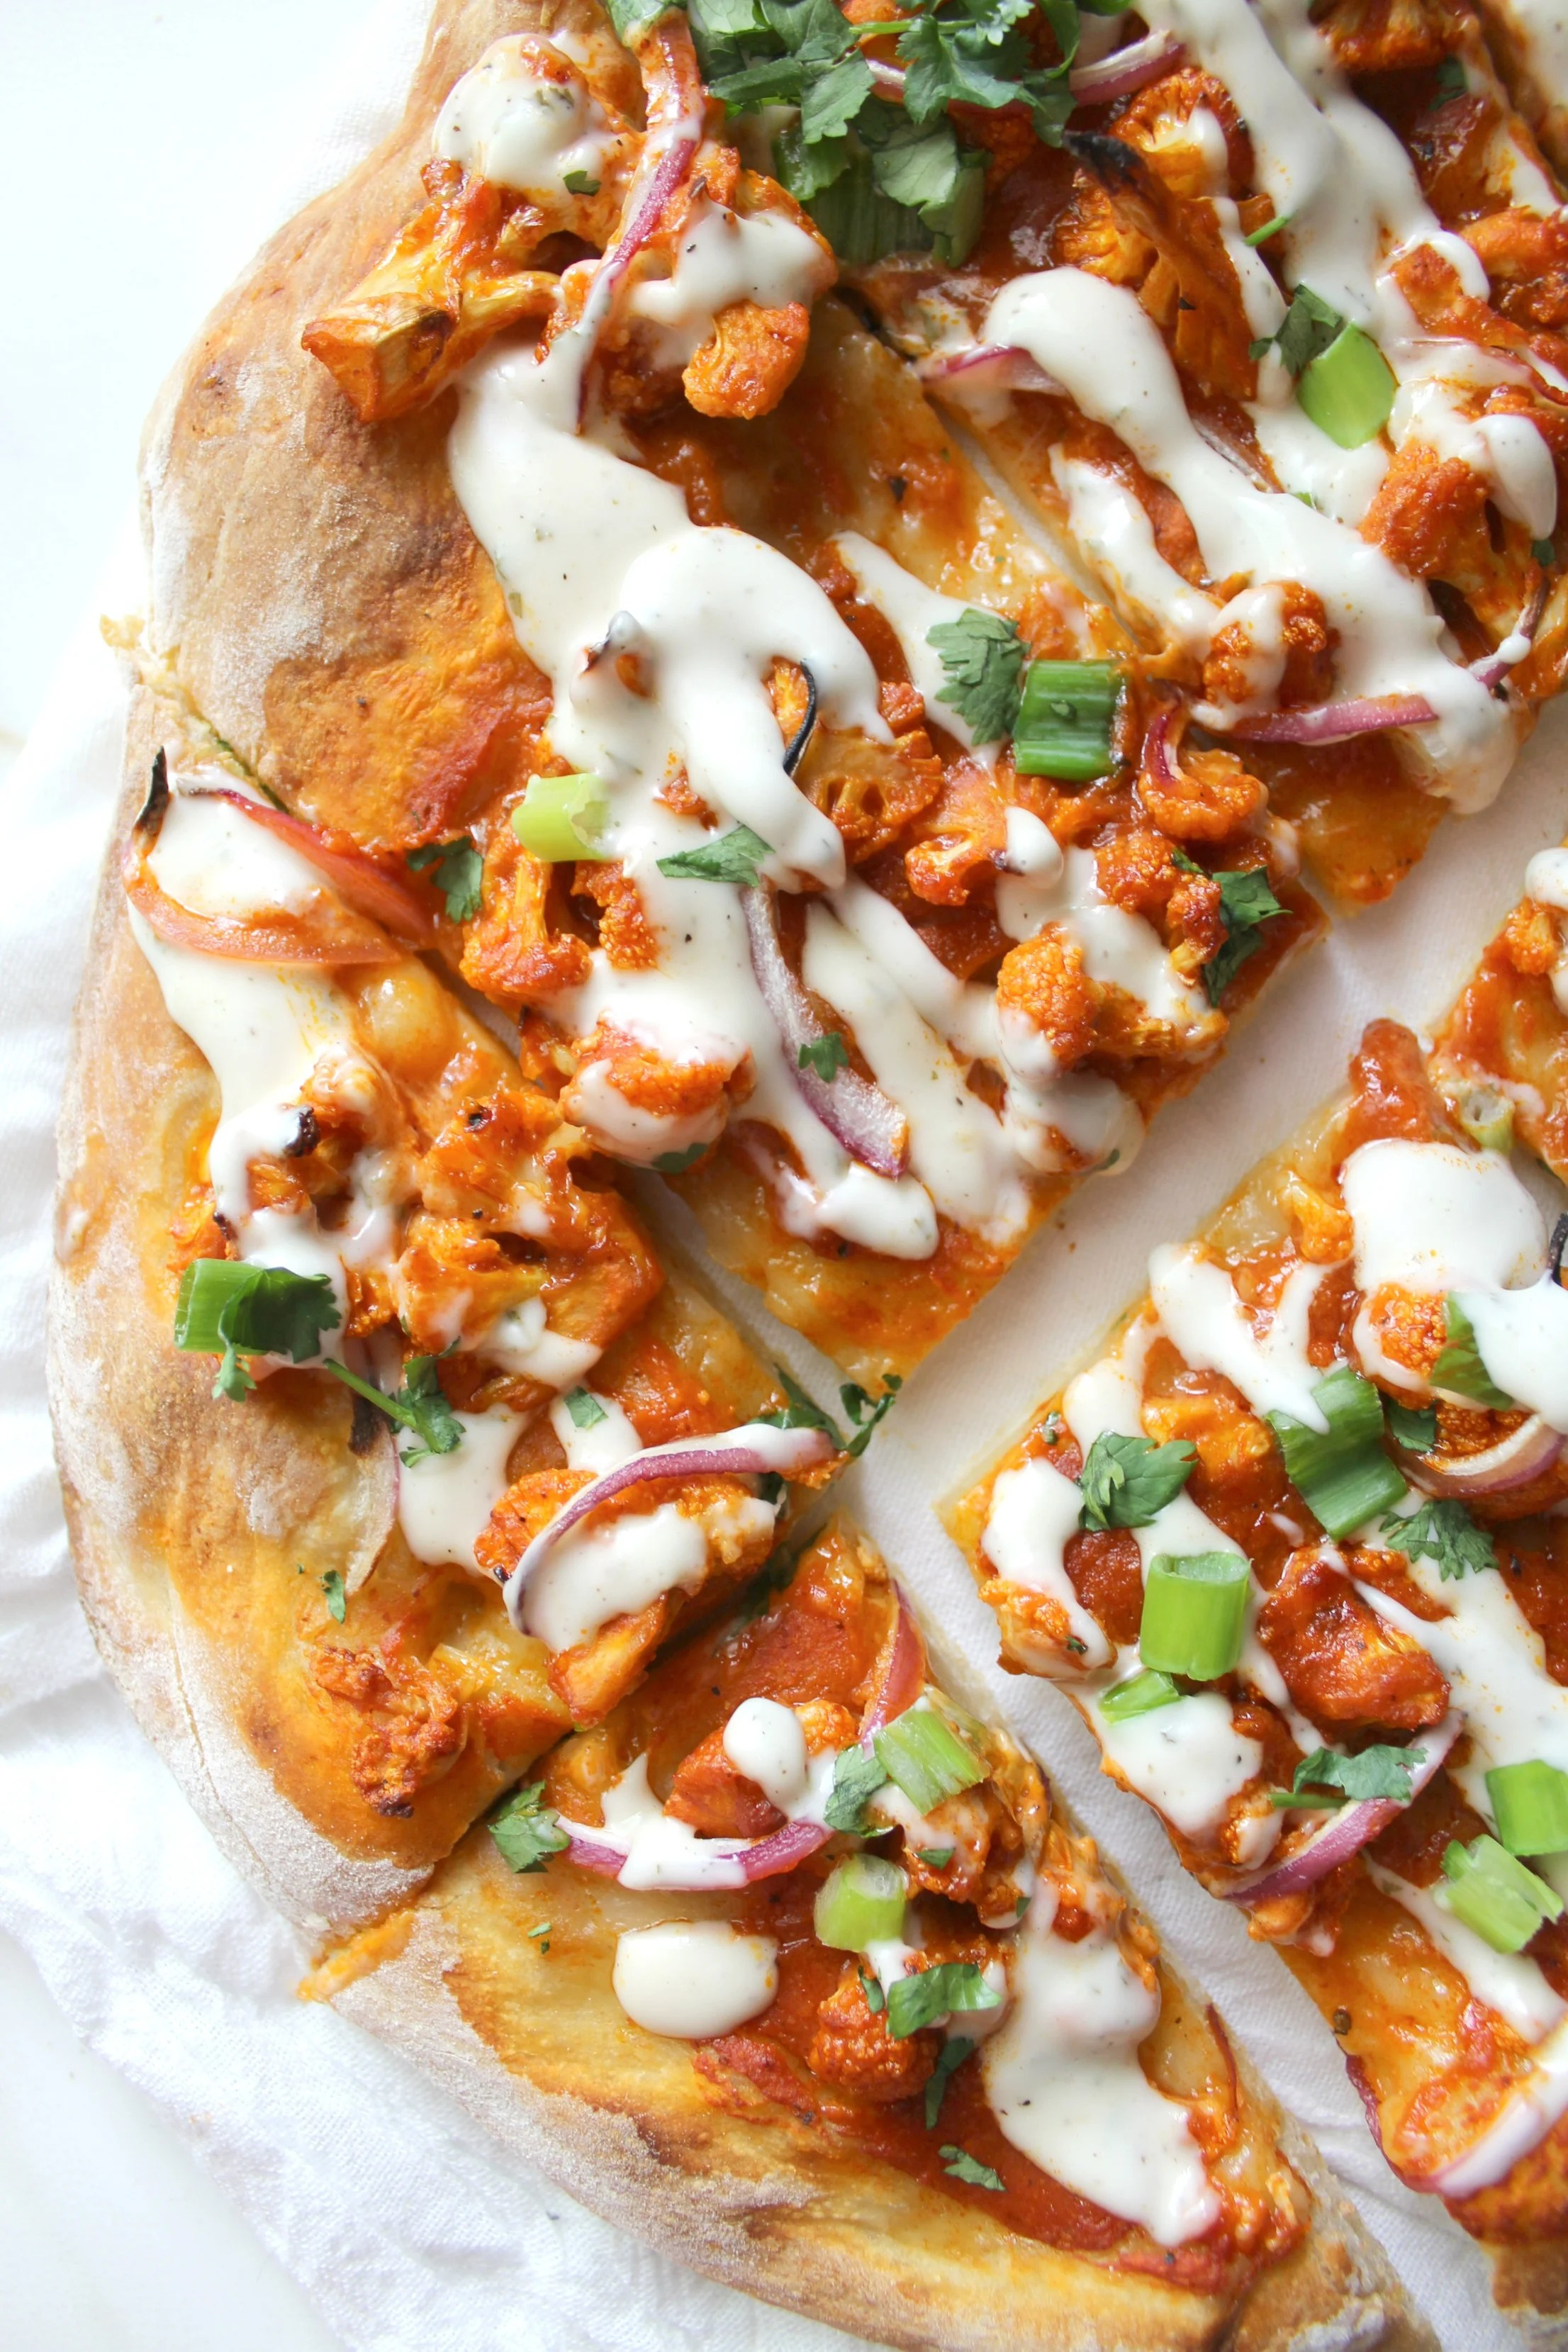 This Vegan Roasted Cauliflower Buffalo Pizza is the perfect balance of spiciness and creaminess with a nice crunch from the cauliflower   ThisSavoryVegan.com